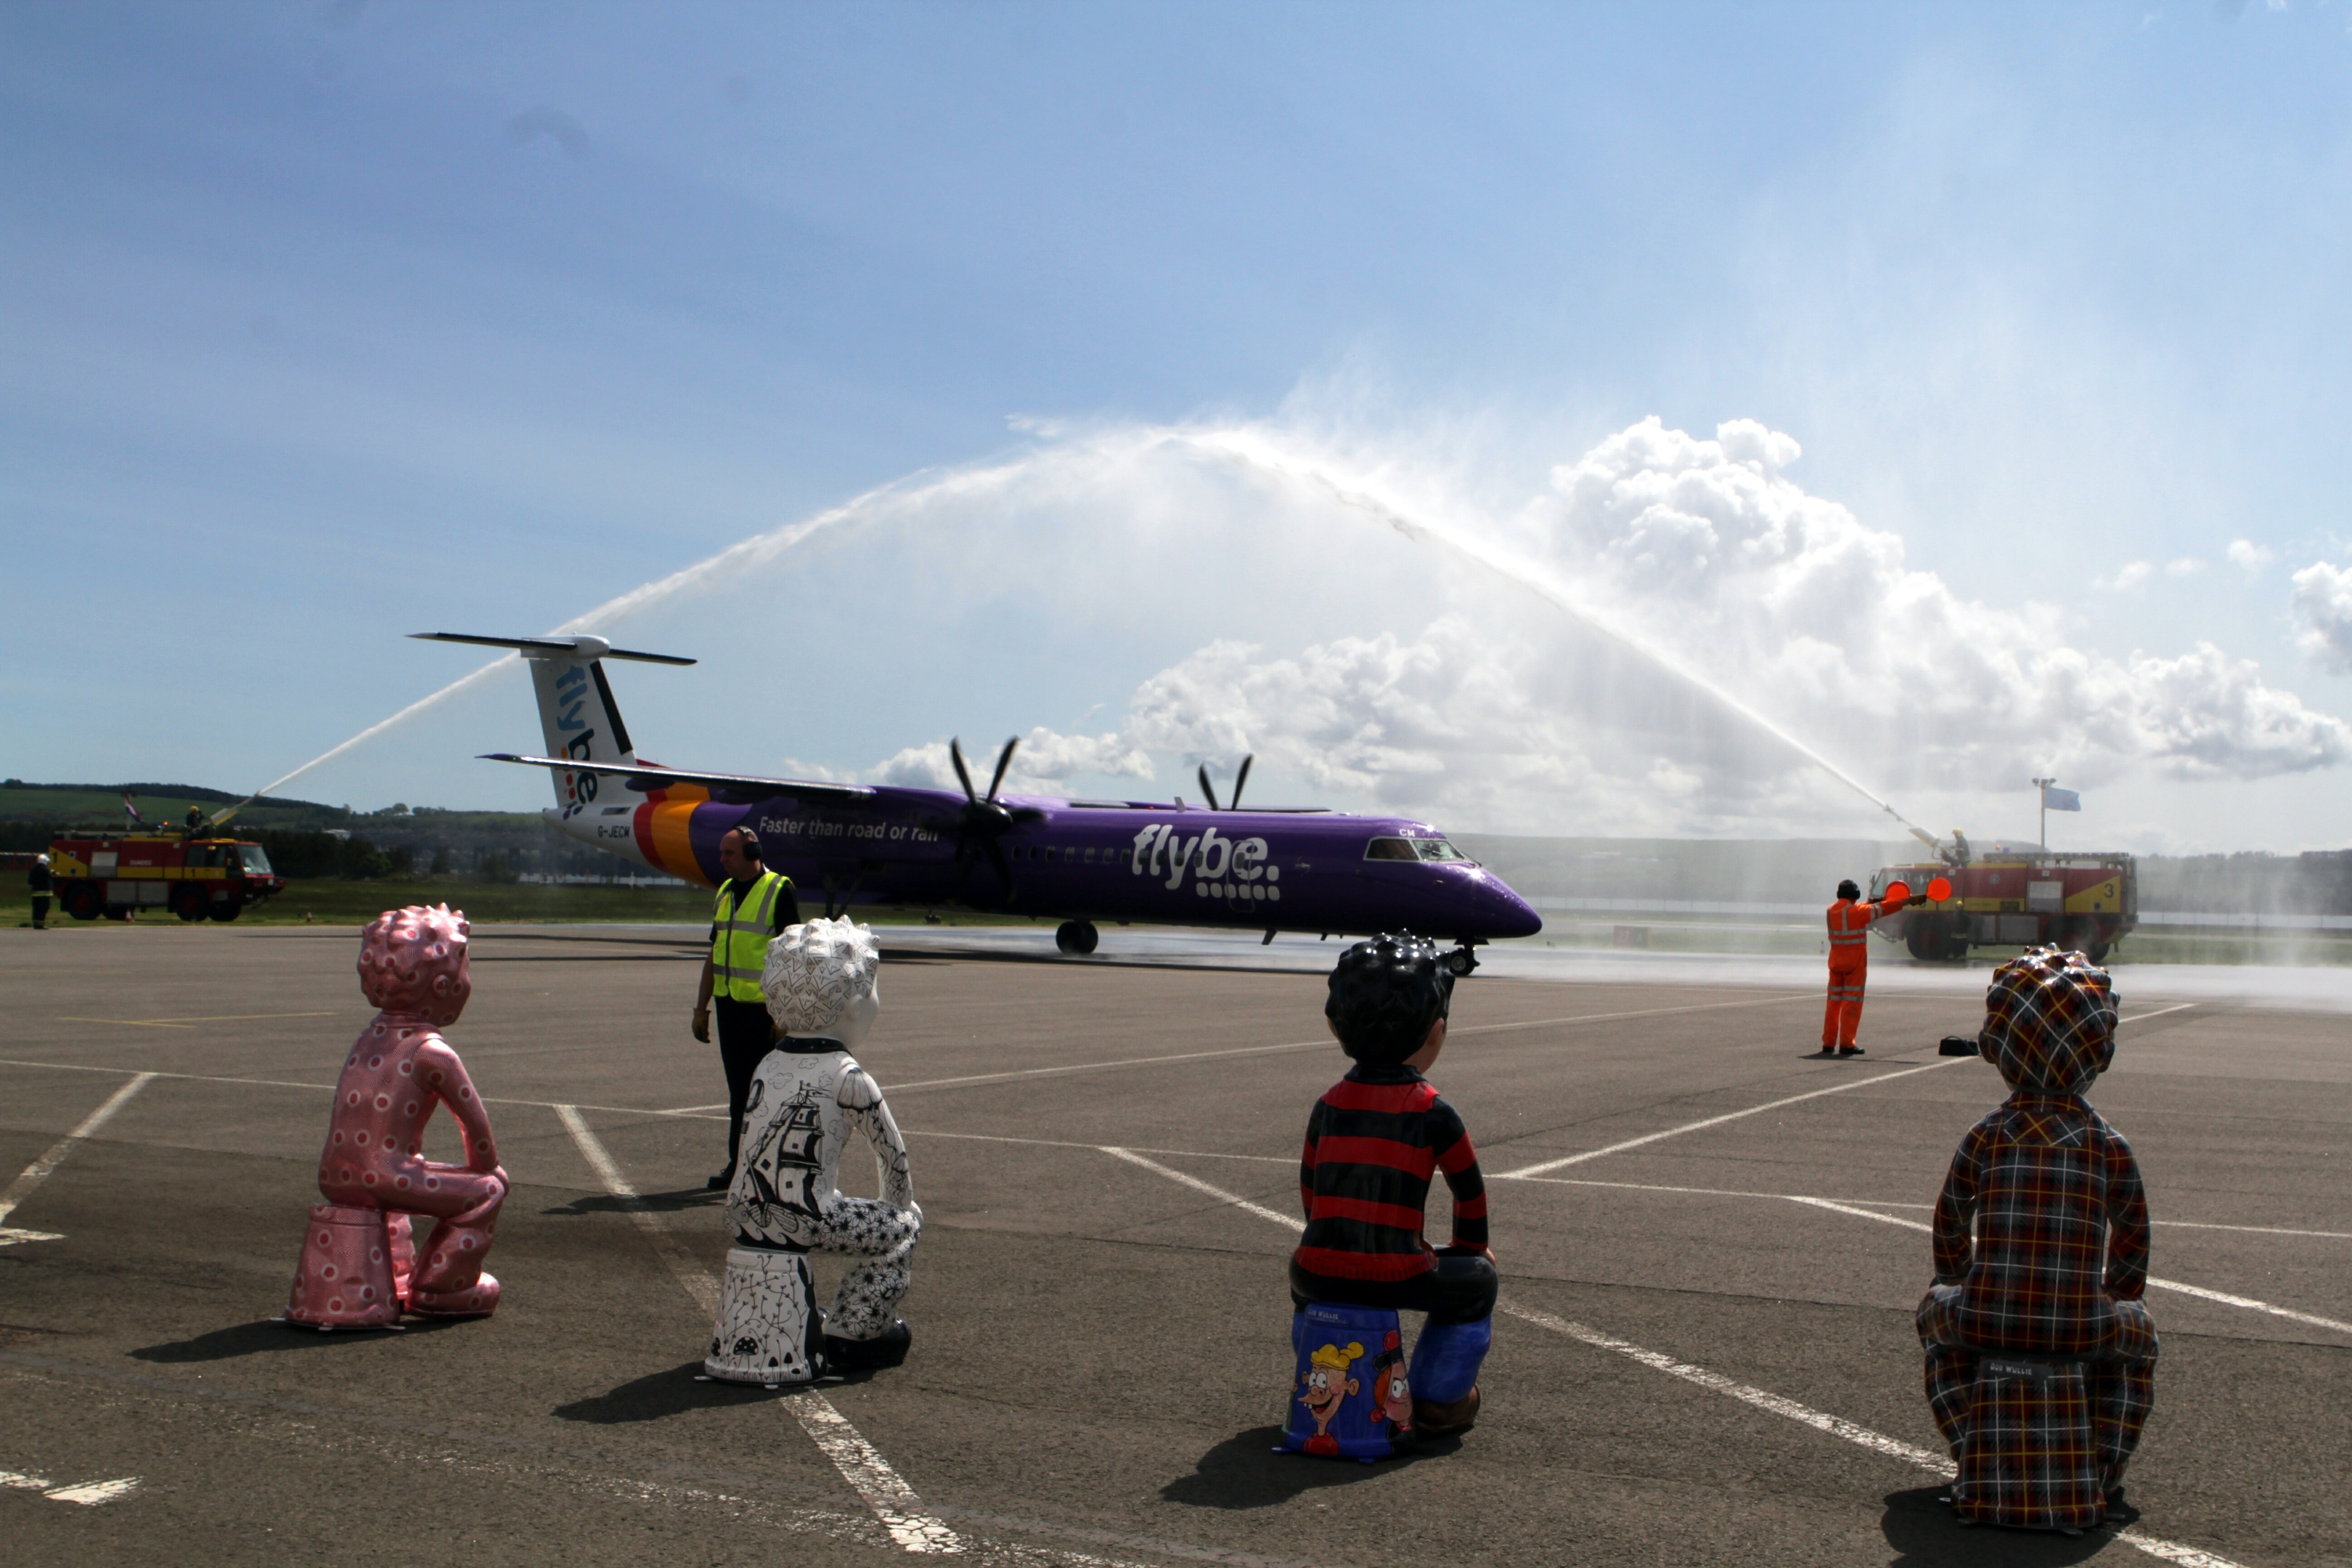 The plane from Amsterdam is welcomed at Dundee Airport